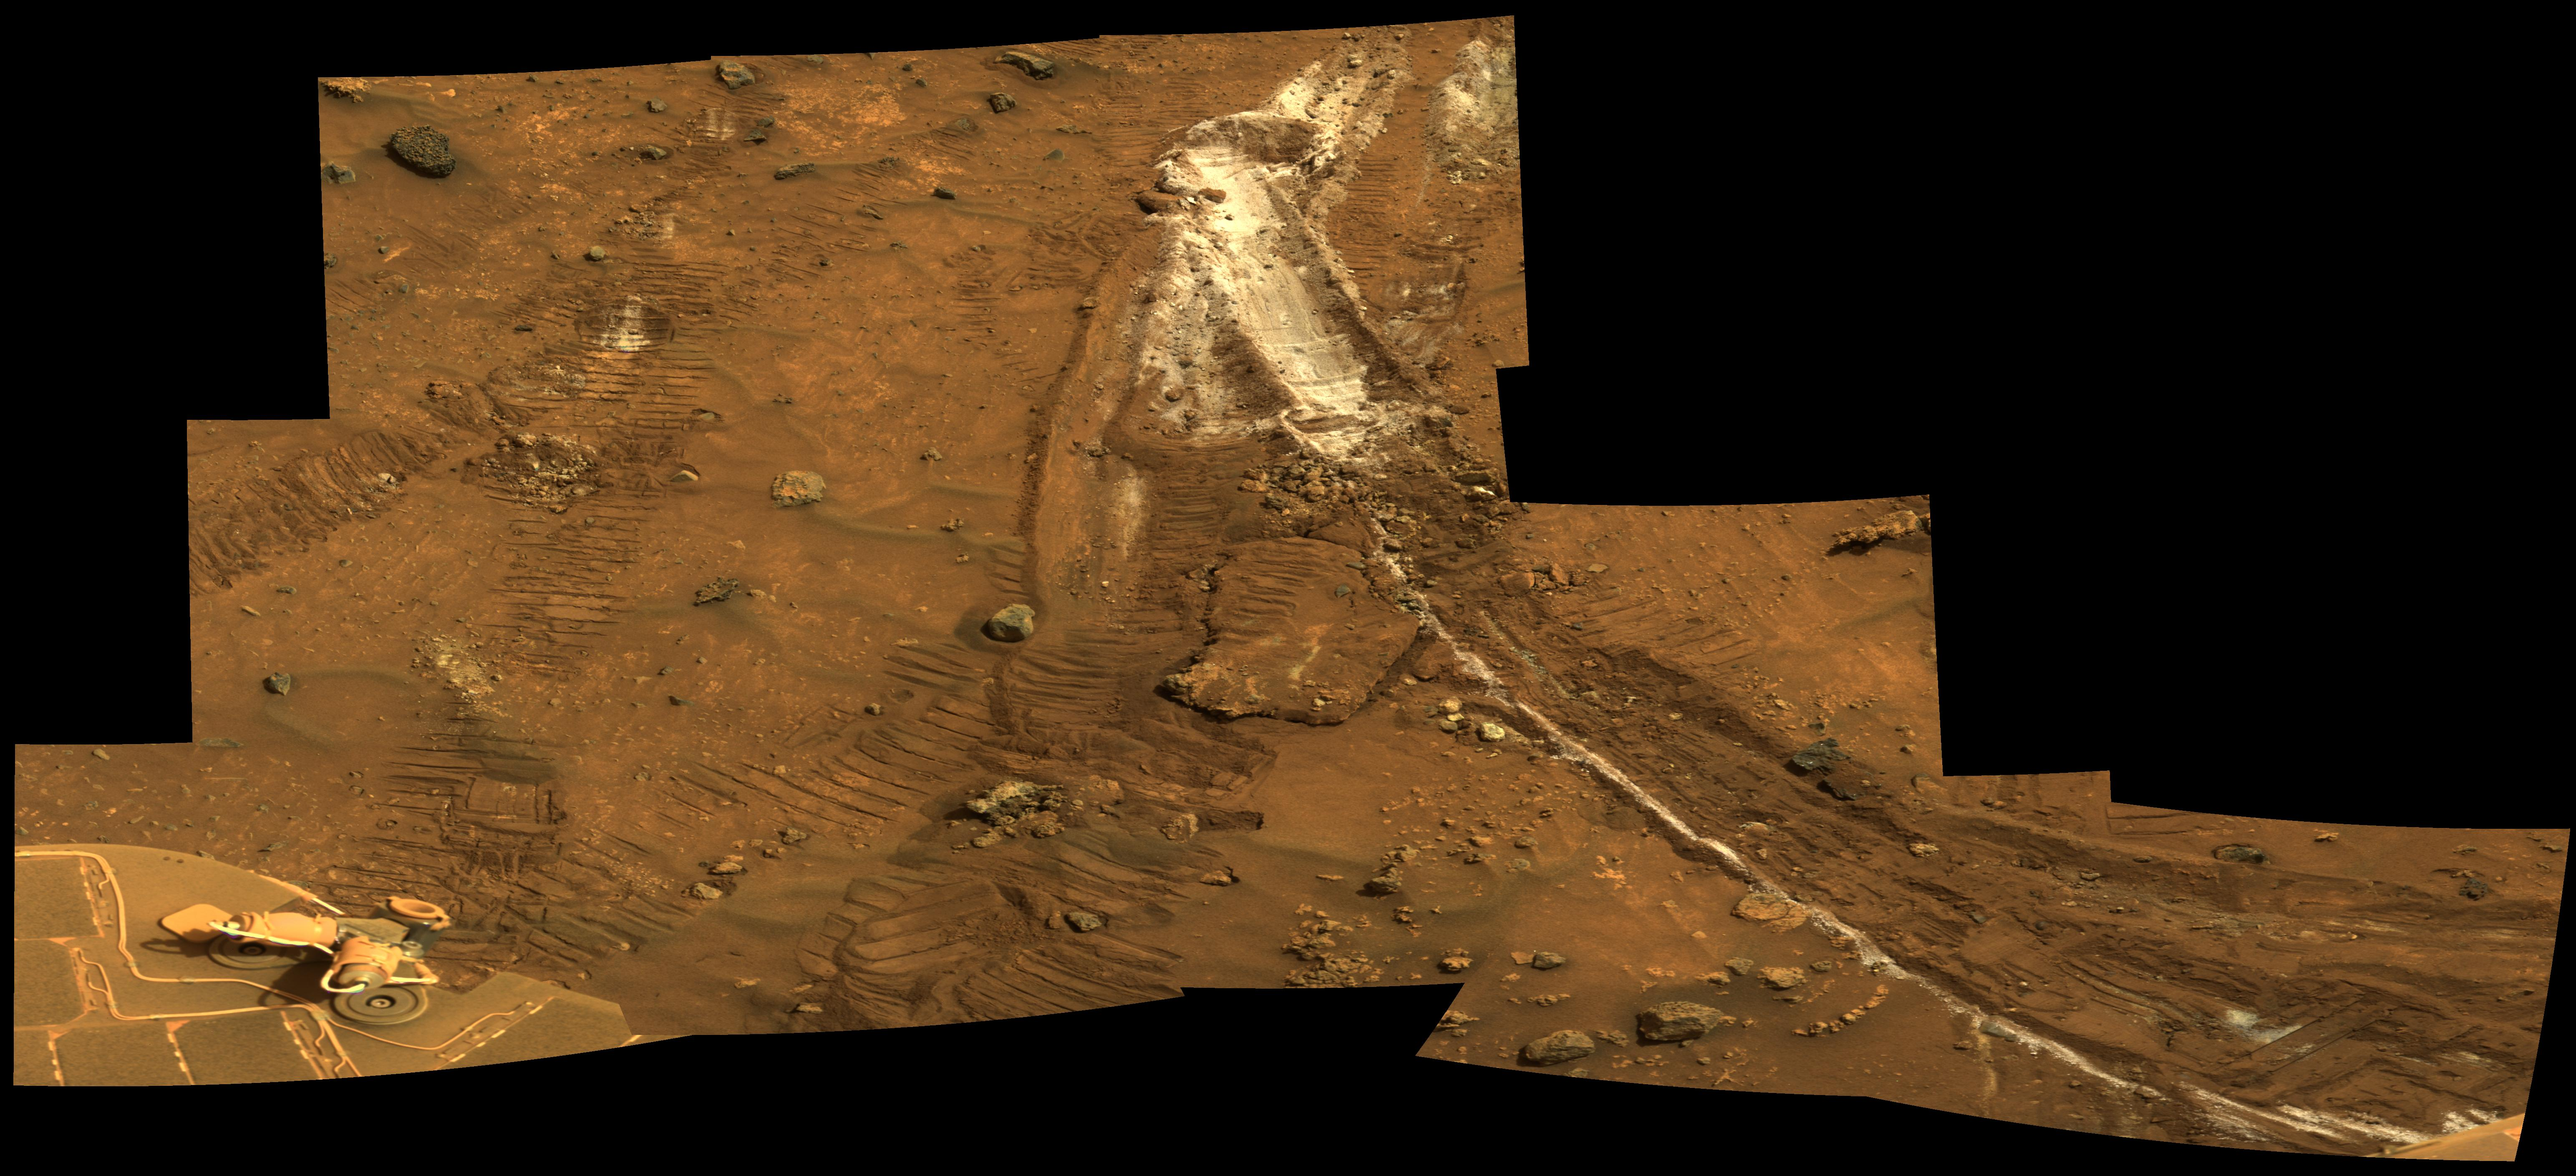 a white wheel mark in the Martian soil shows a spot where Spirit came across the mineral silica